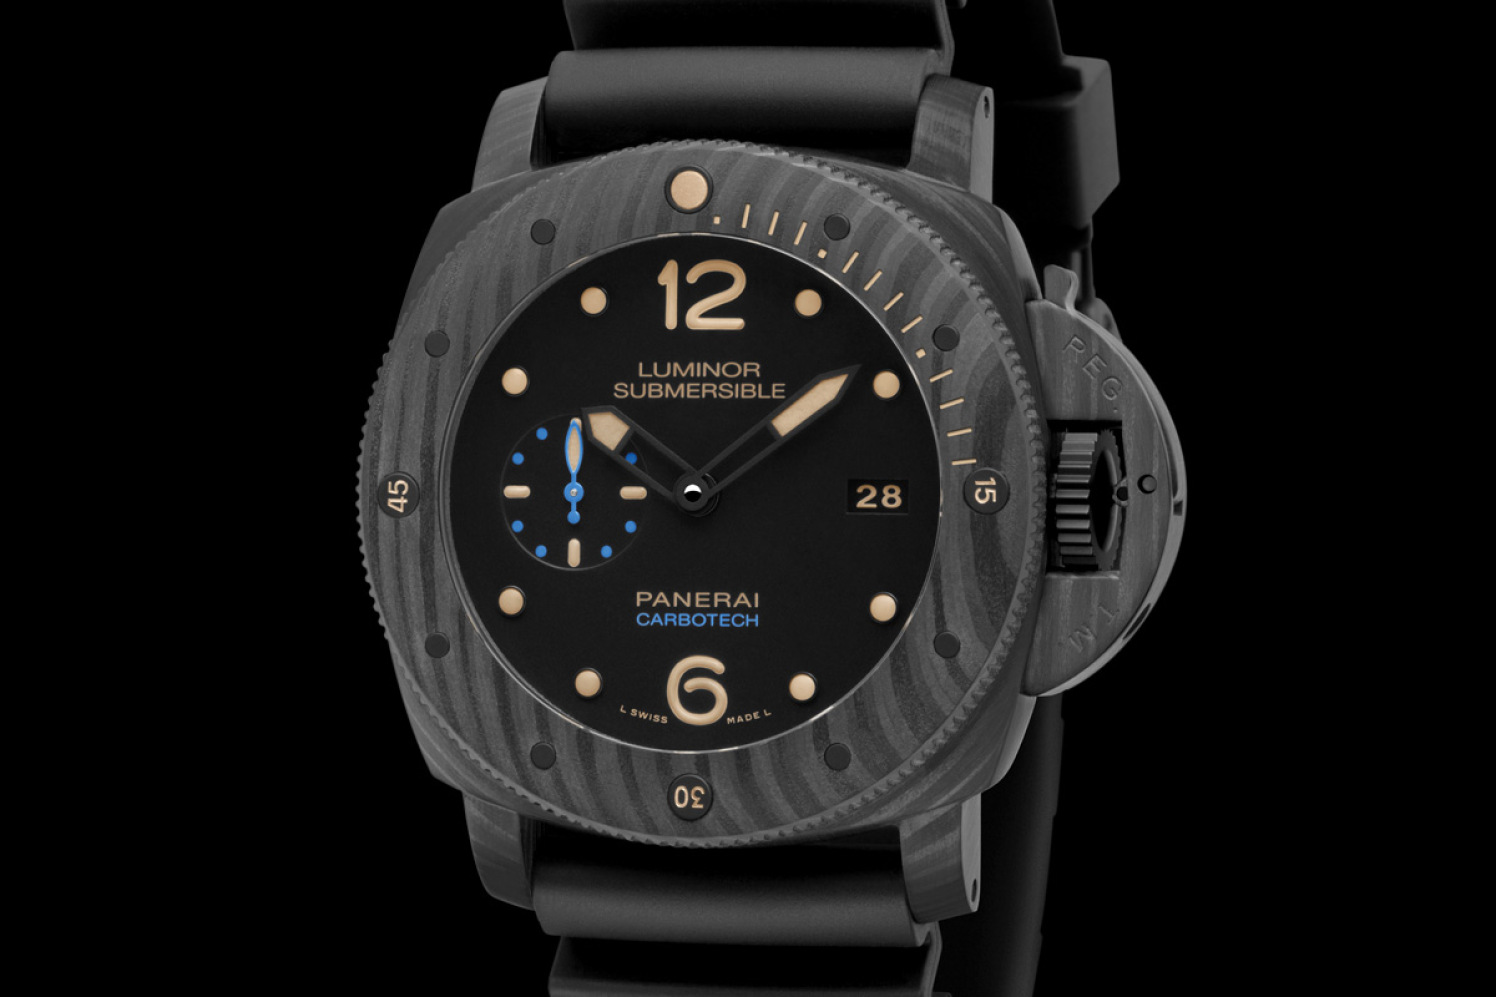 Panerai-Luminor-Submersible-1950-Carbotech-3-Days-Automatic-47mm-PAM00616-3